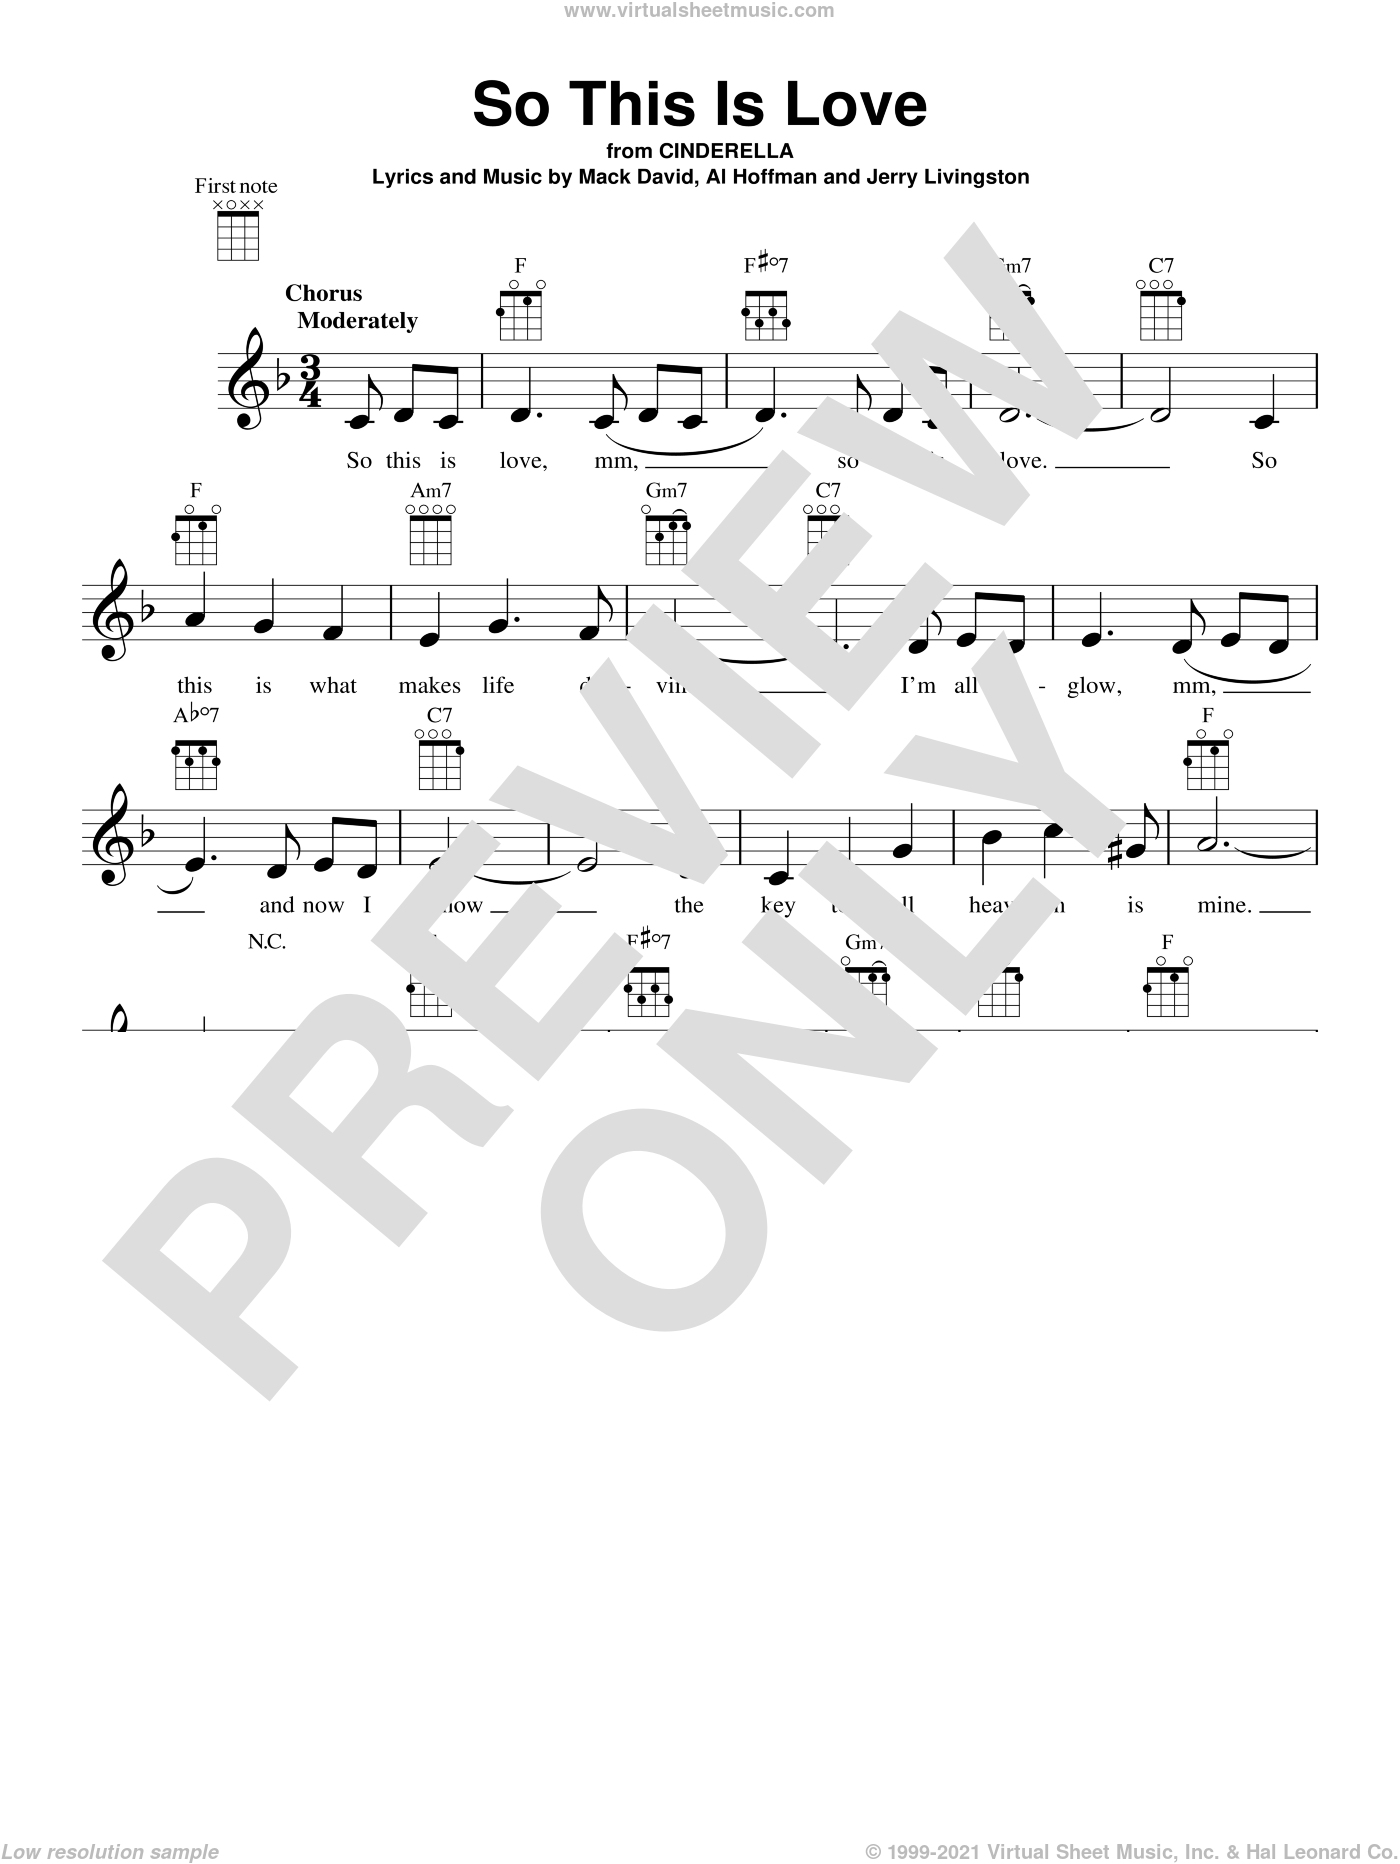 So This Is Love sheet music for ukulele by Al Hoffman, James Ingram, Jerry Livingston, Mack David and Mack David, Al Hoffman and Jerry Livingston, intermediate